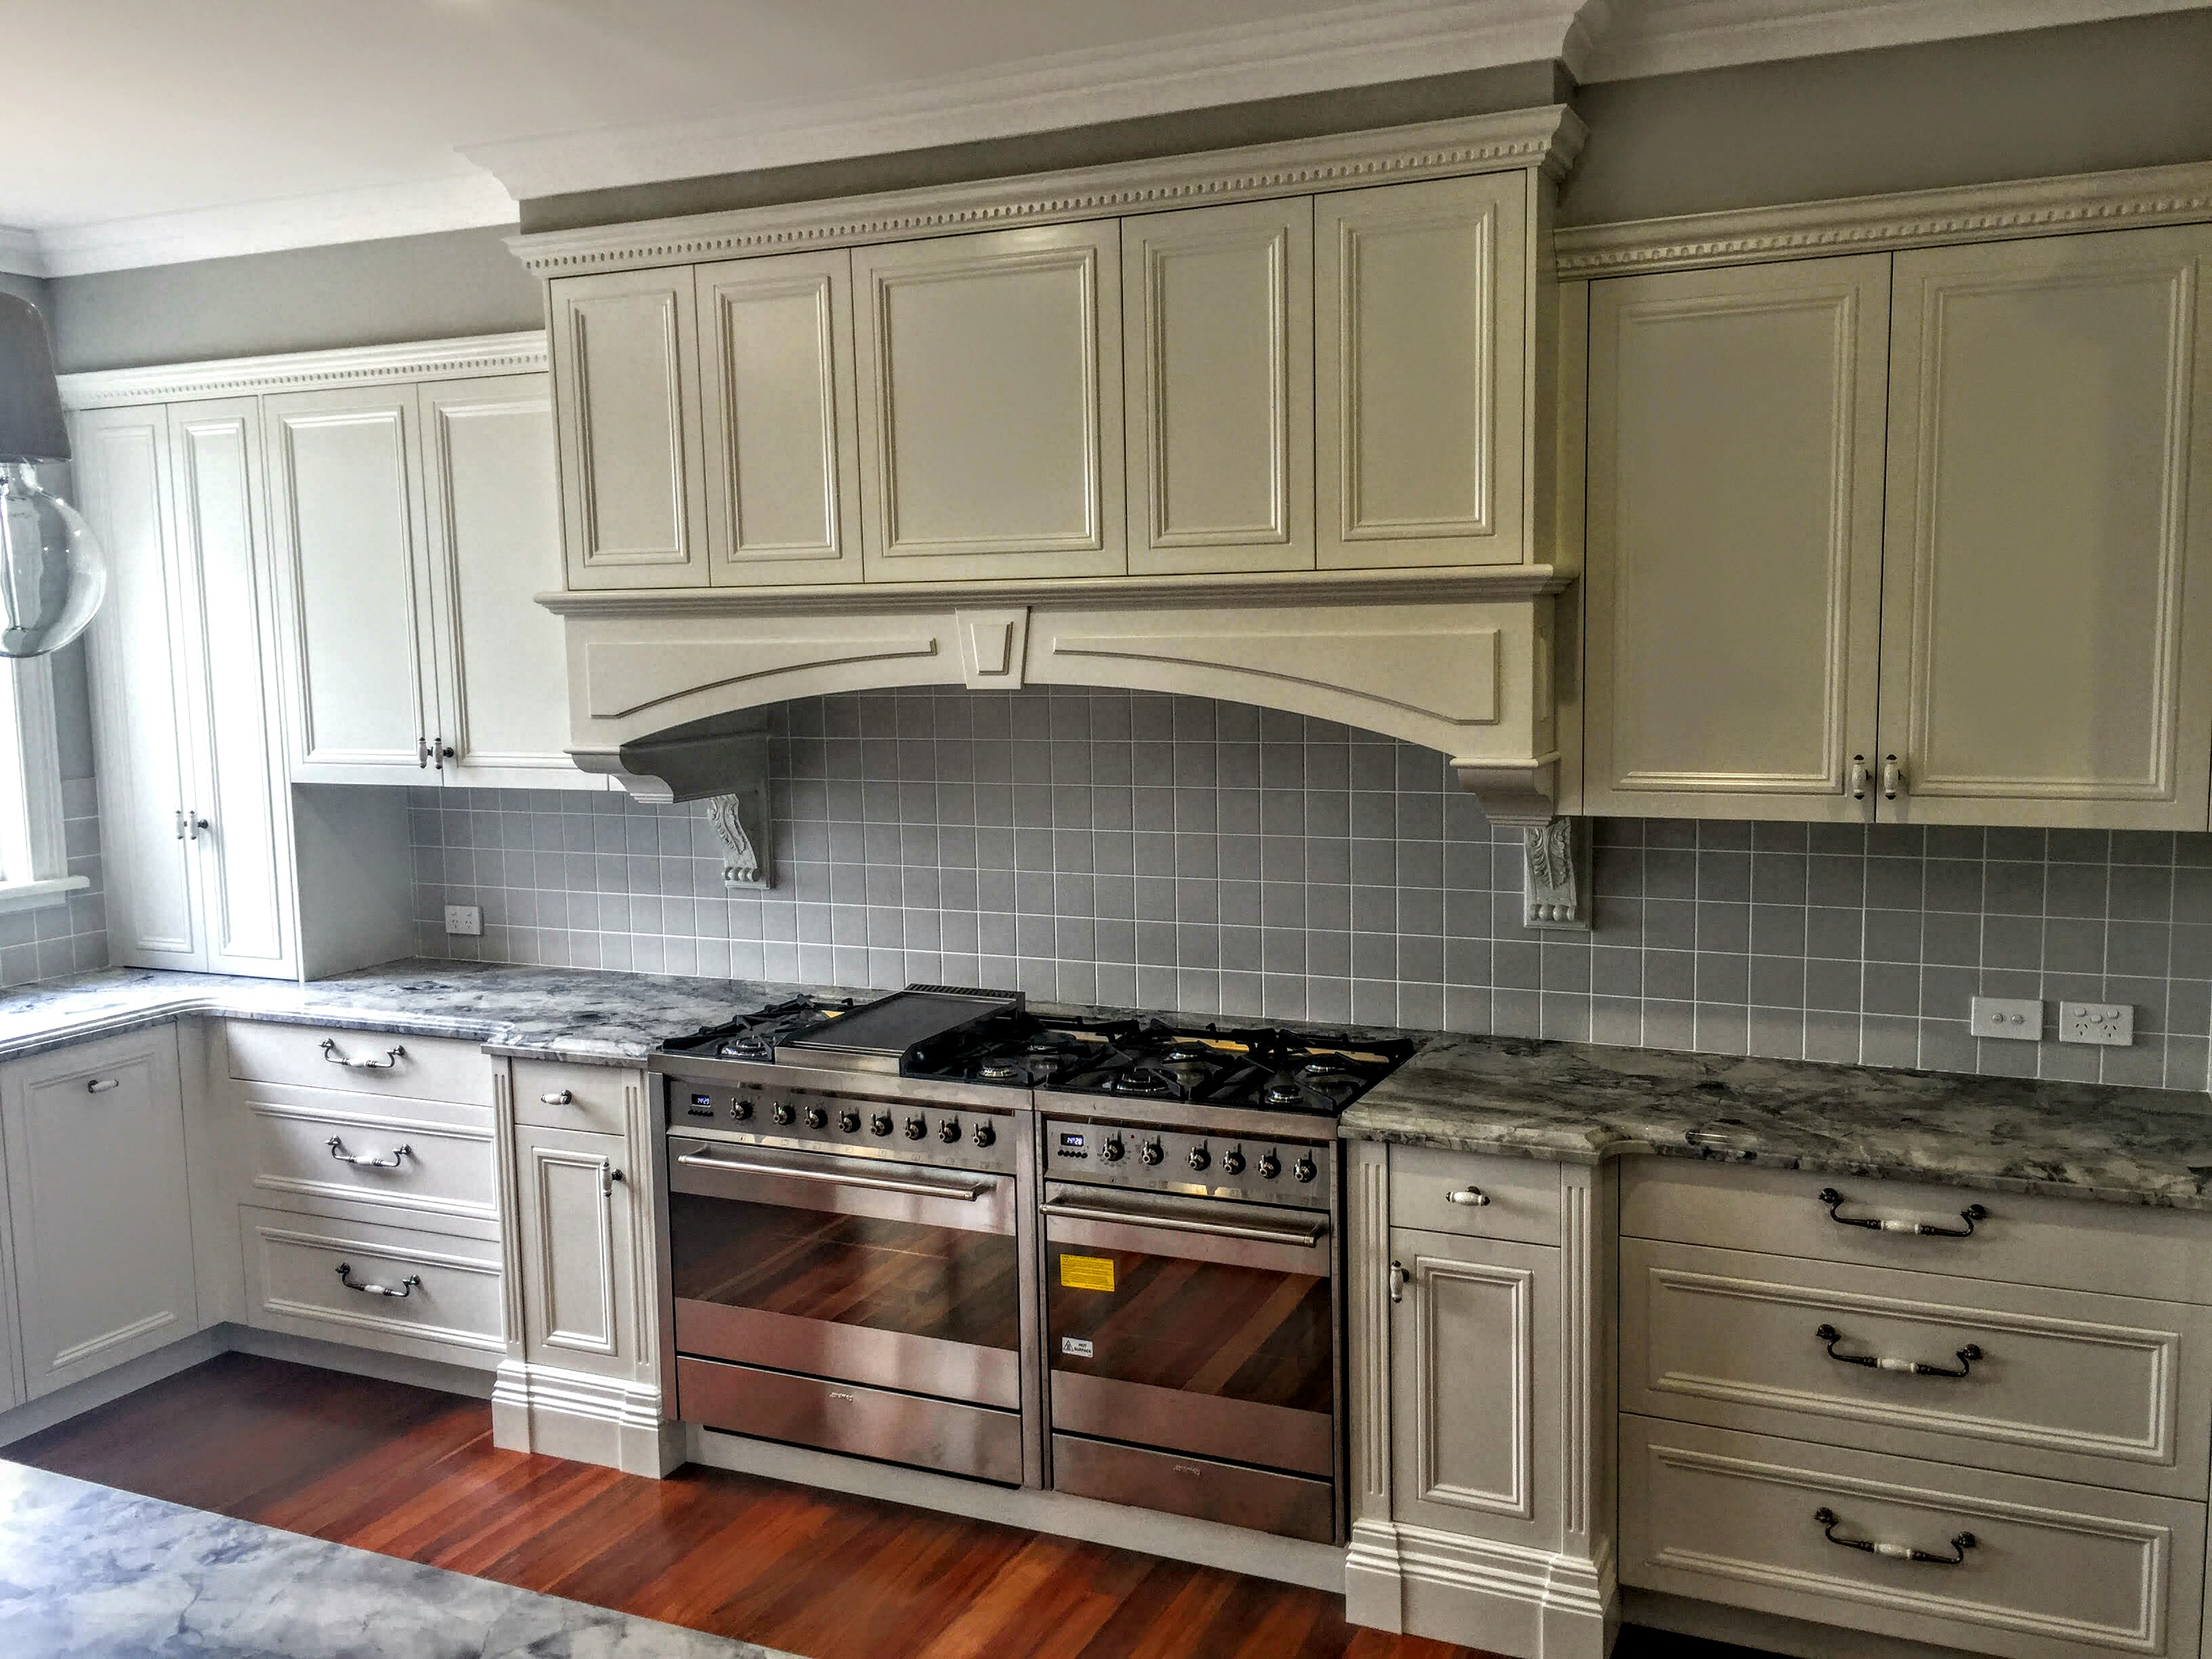 French provincial kitchens dgs kitchens windsor nsw for French provincial kitchen designs